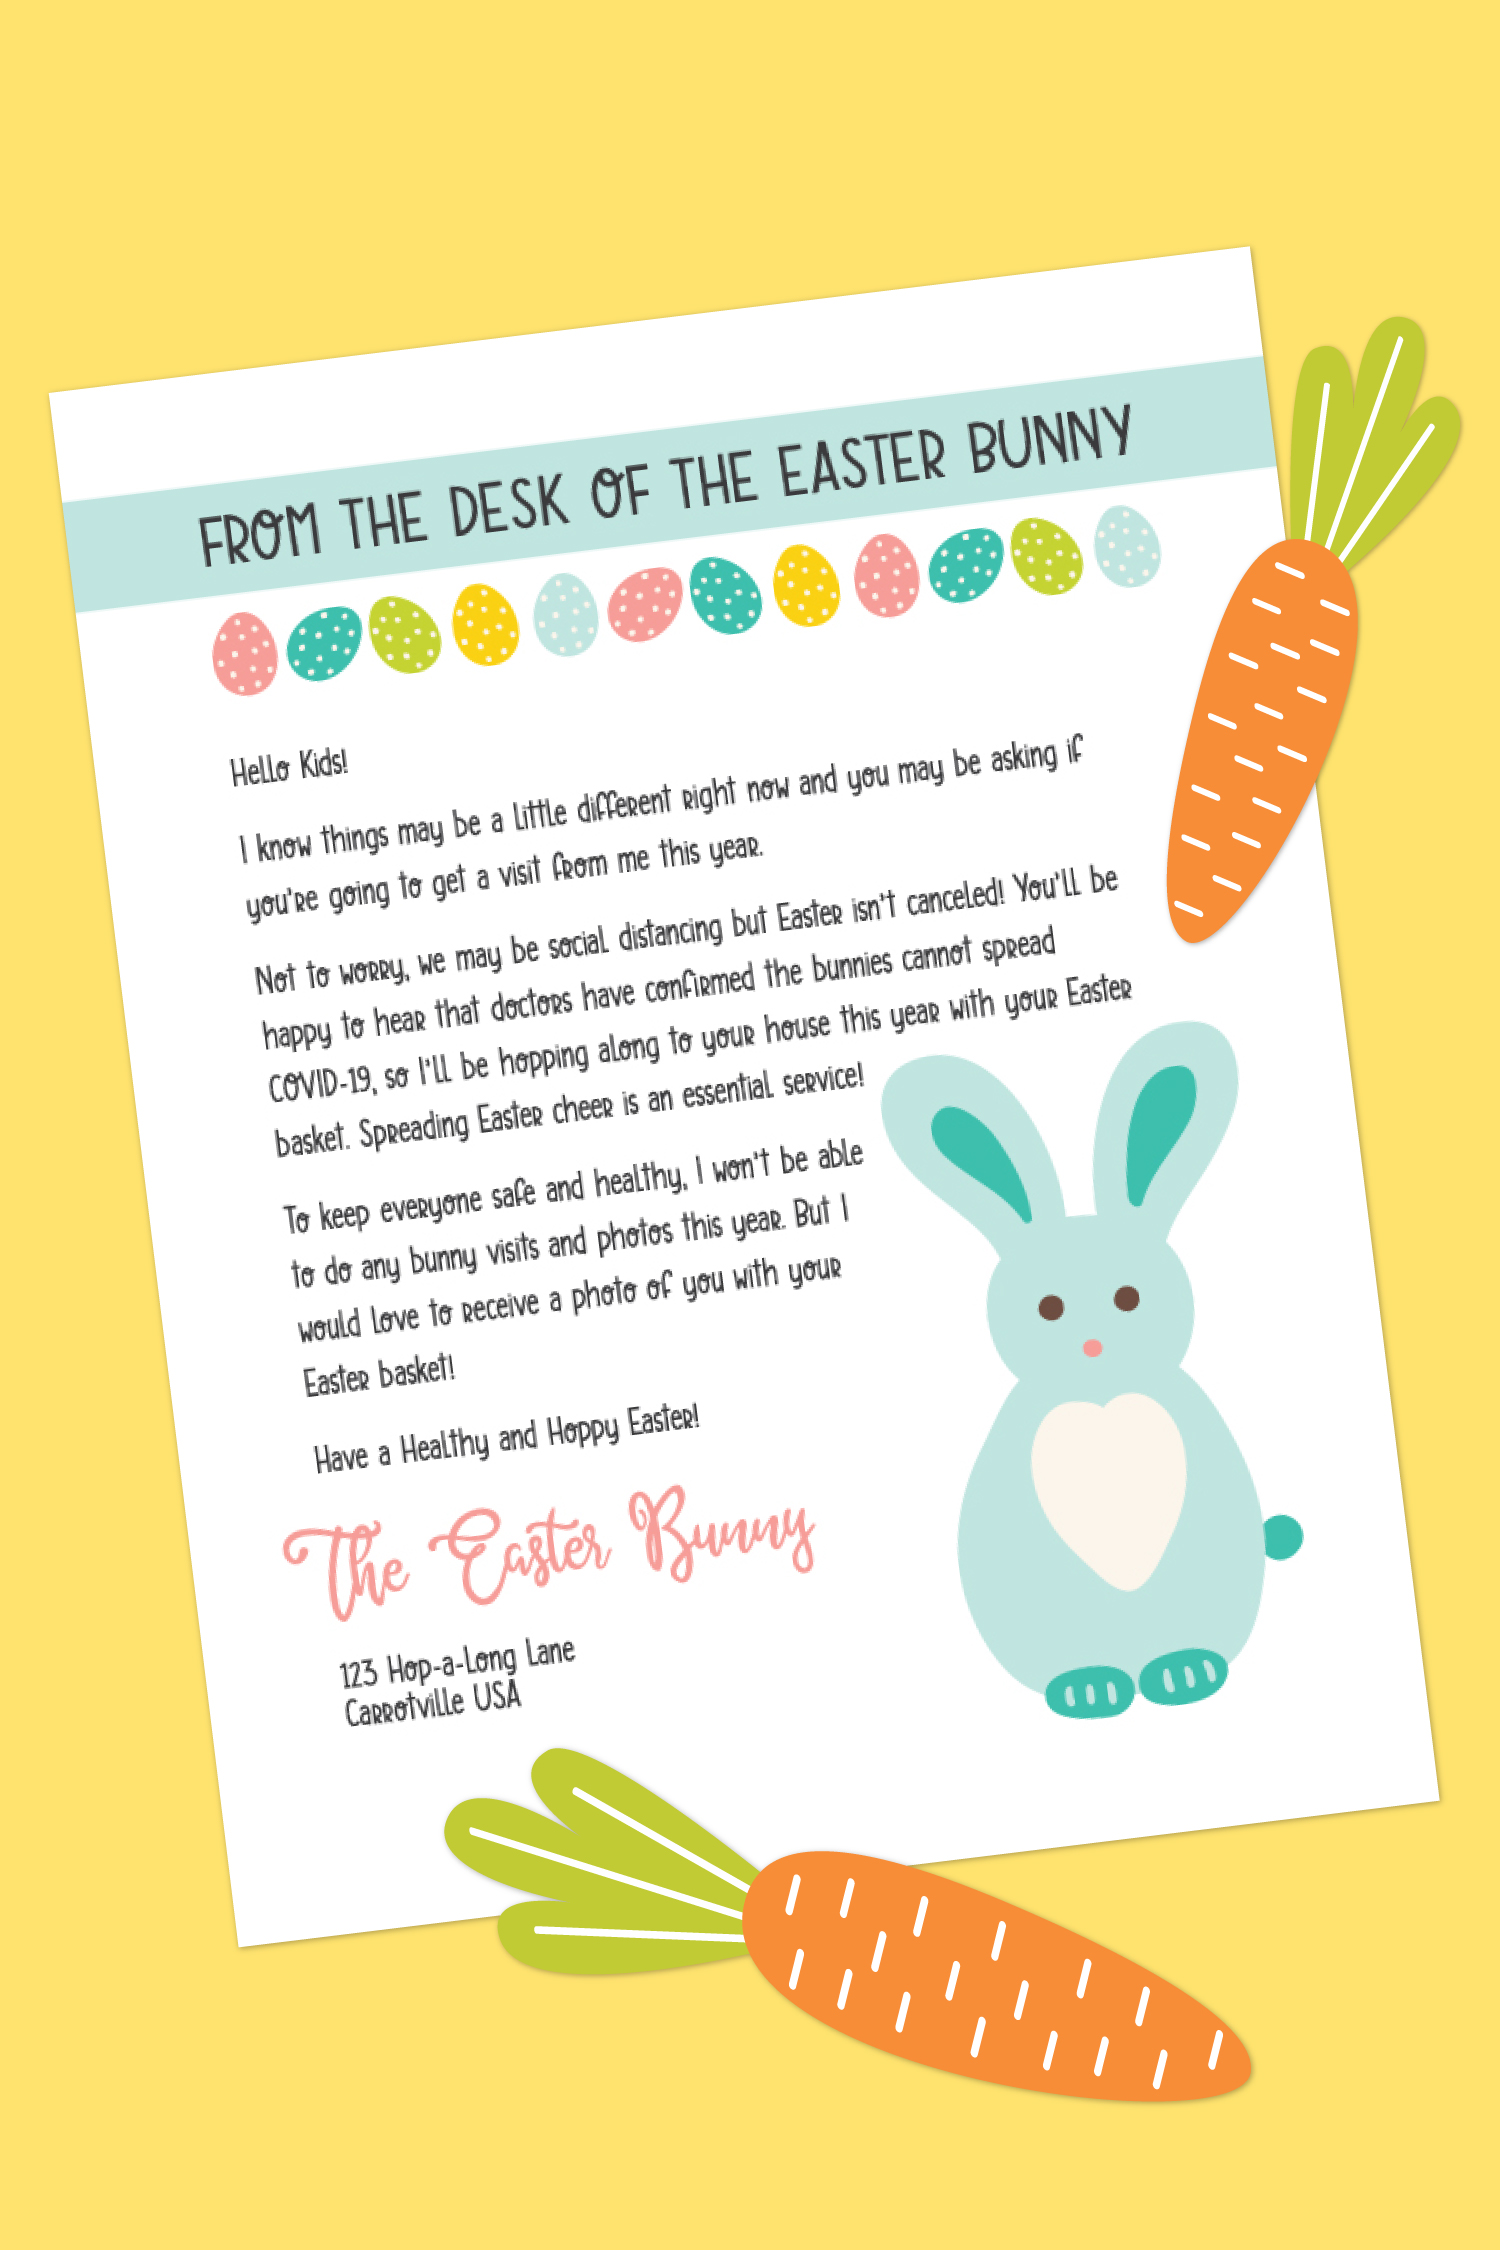 Are your kids are worried whether or not they'll get a visit from the Easter Bunny in the middle of the COVID-19 pandemic? This Easter Bunny letter will help ease their worries!